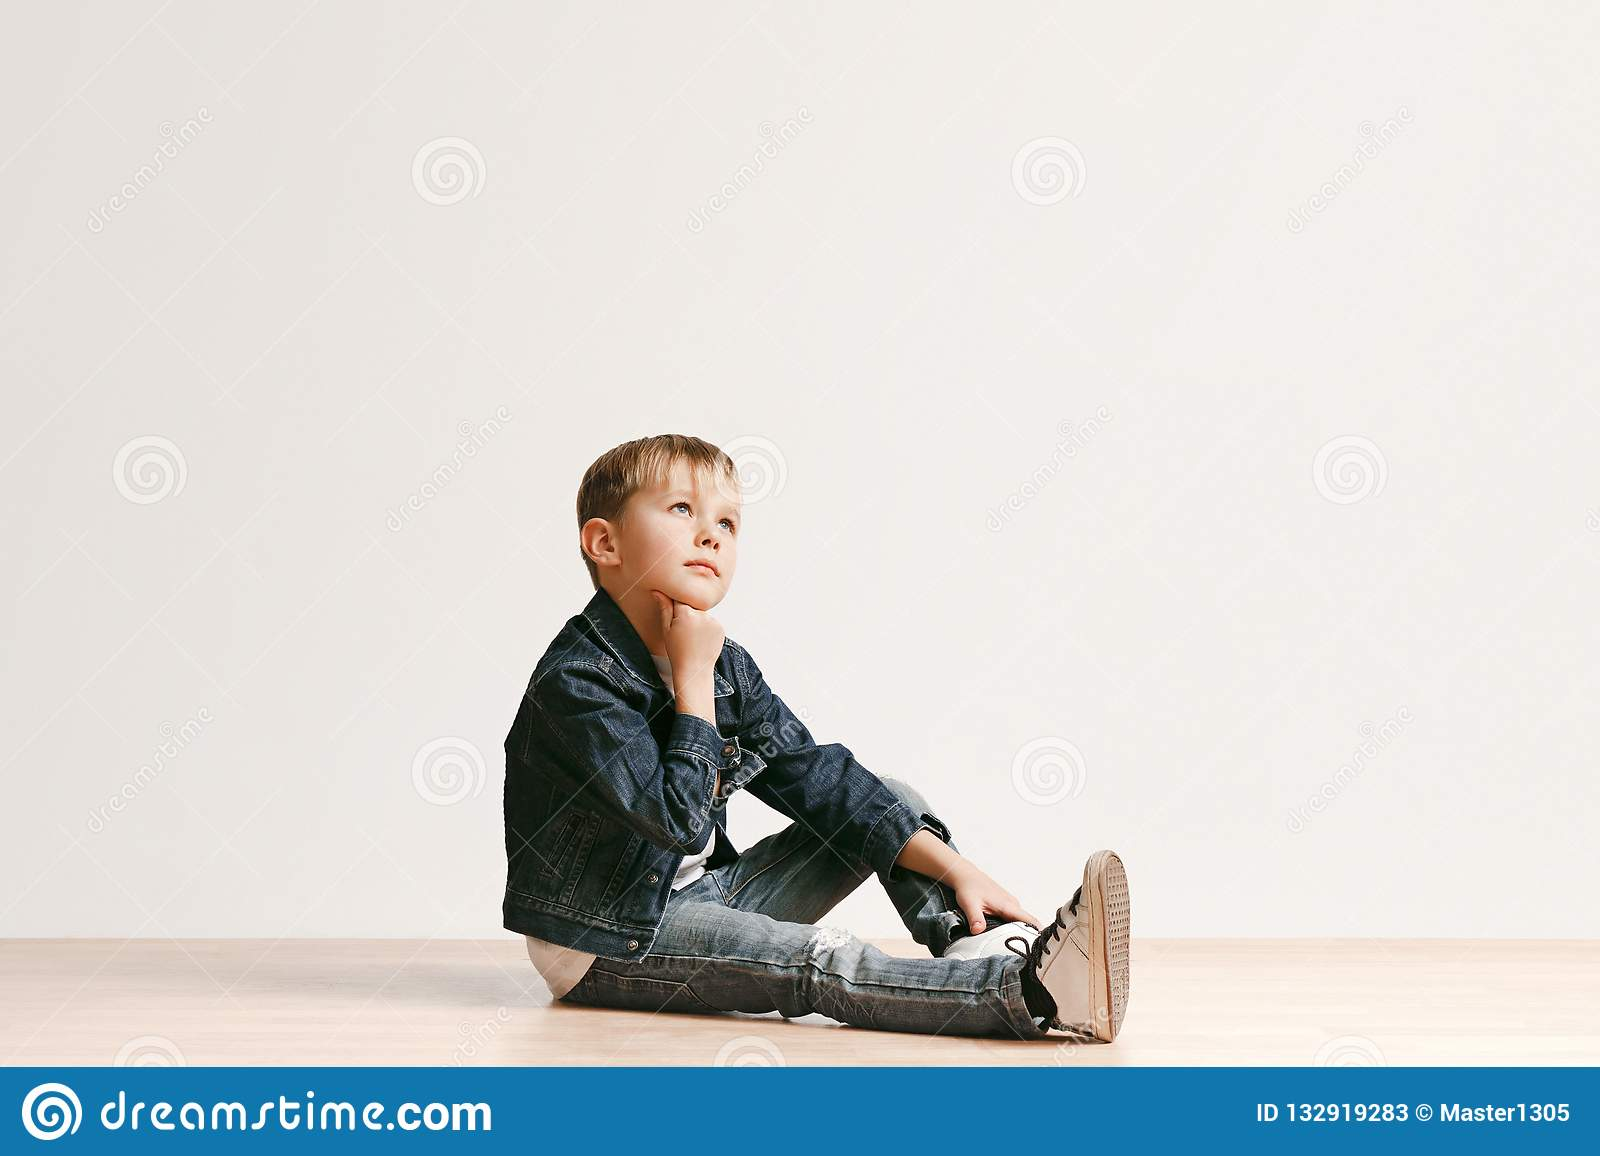 The portrait of cute little kid boy in stylish jeans clothes looking at camera against white studio wall kids fashion concept